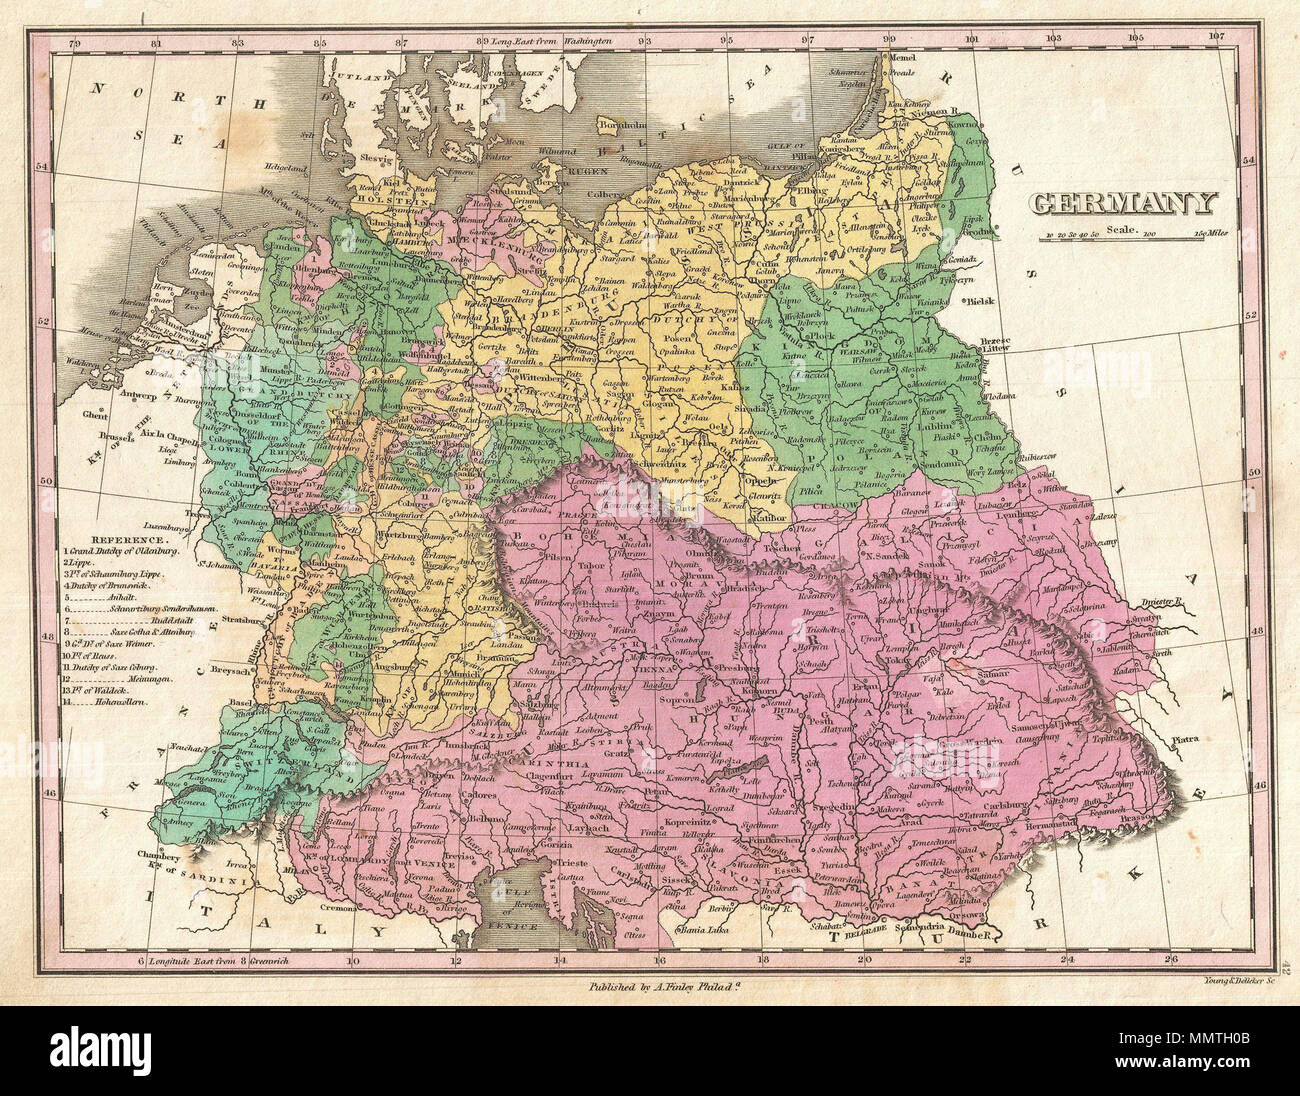 Map Of Germany With Cities In English.Finley Map Of Germany Stock Photos Finley Map Of Germany Stock